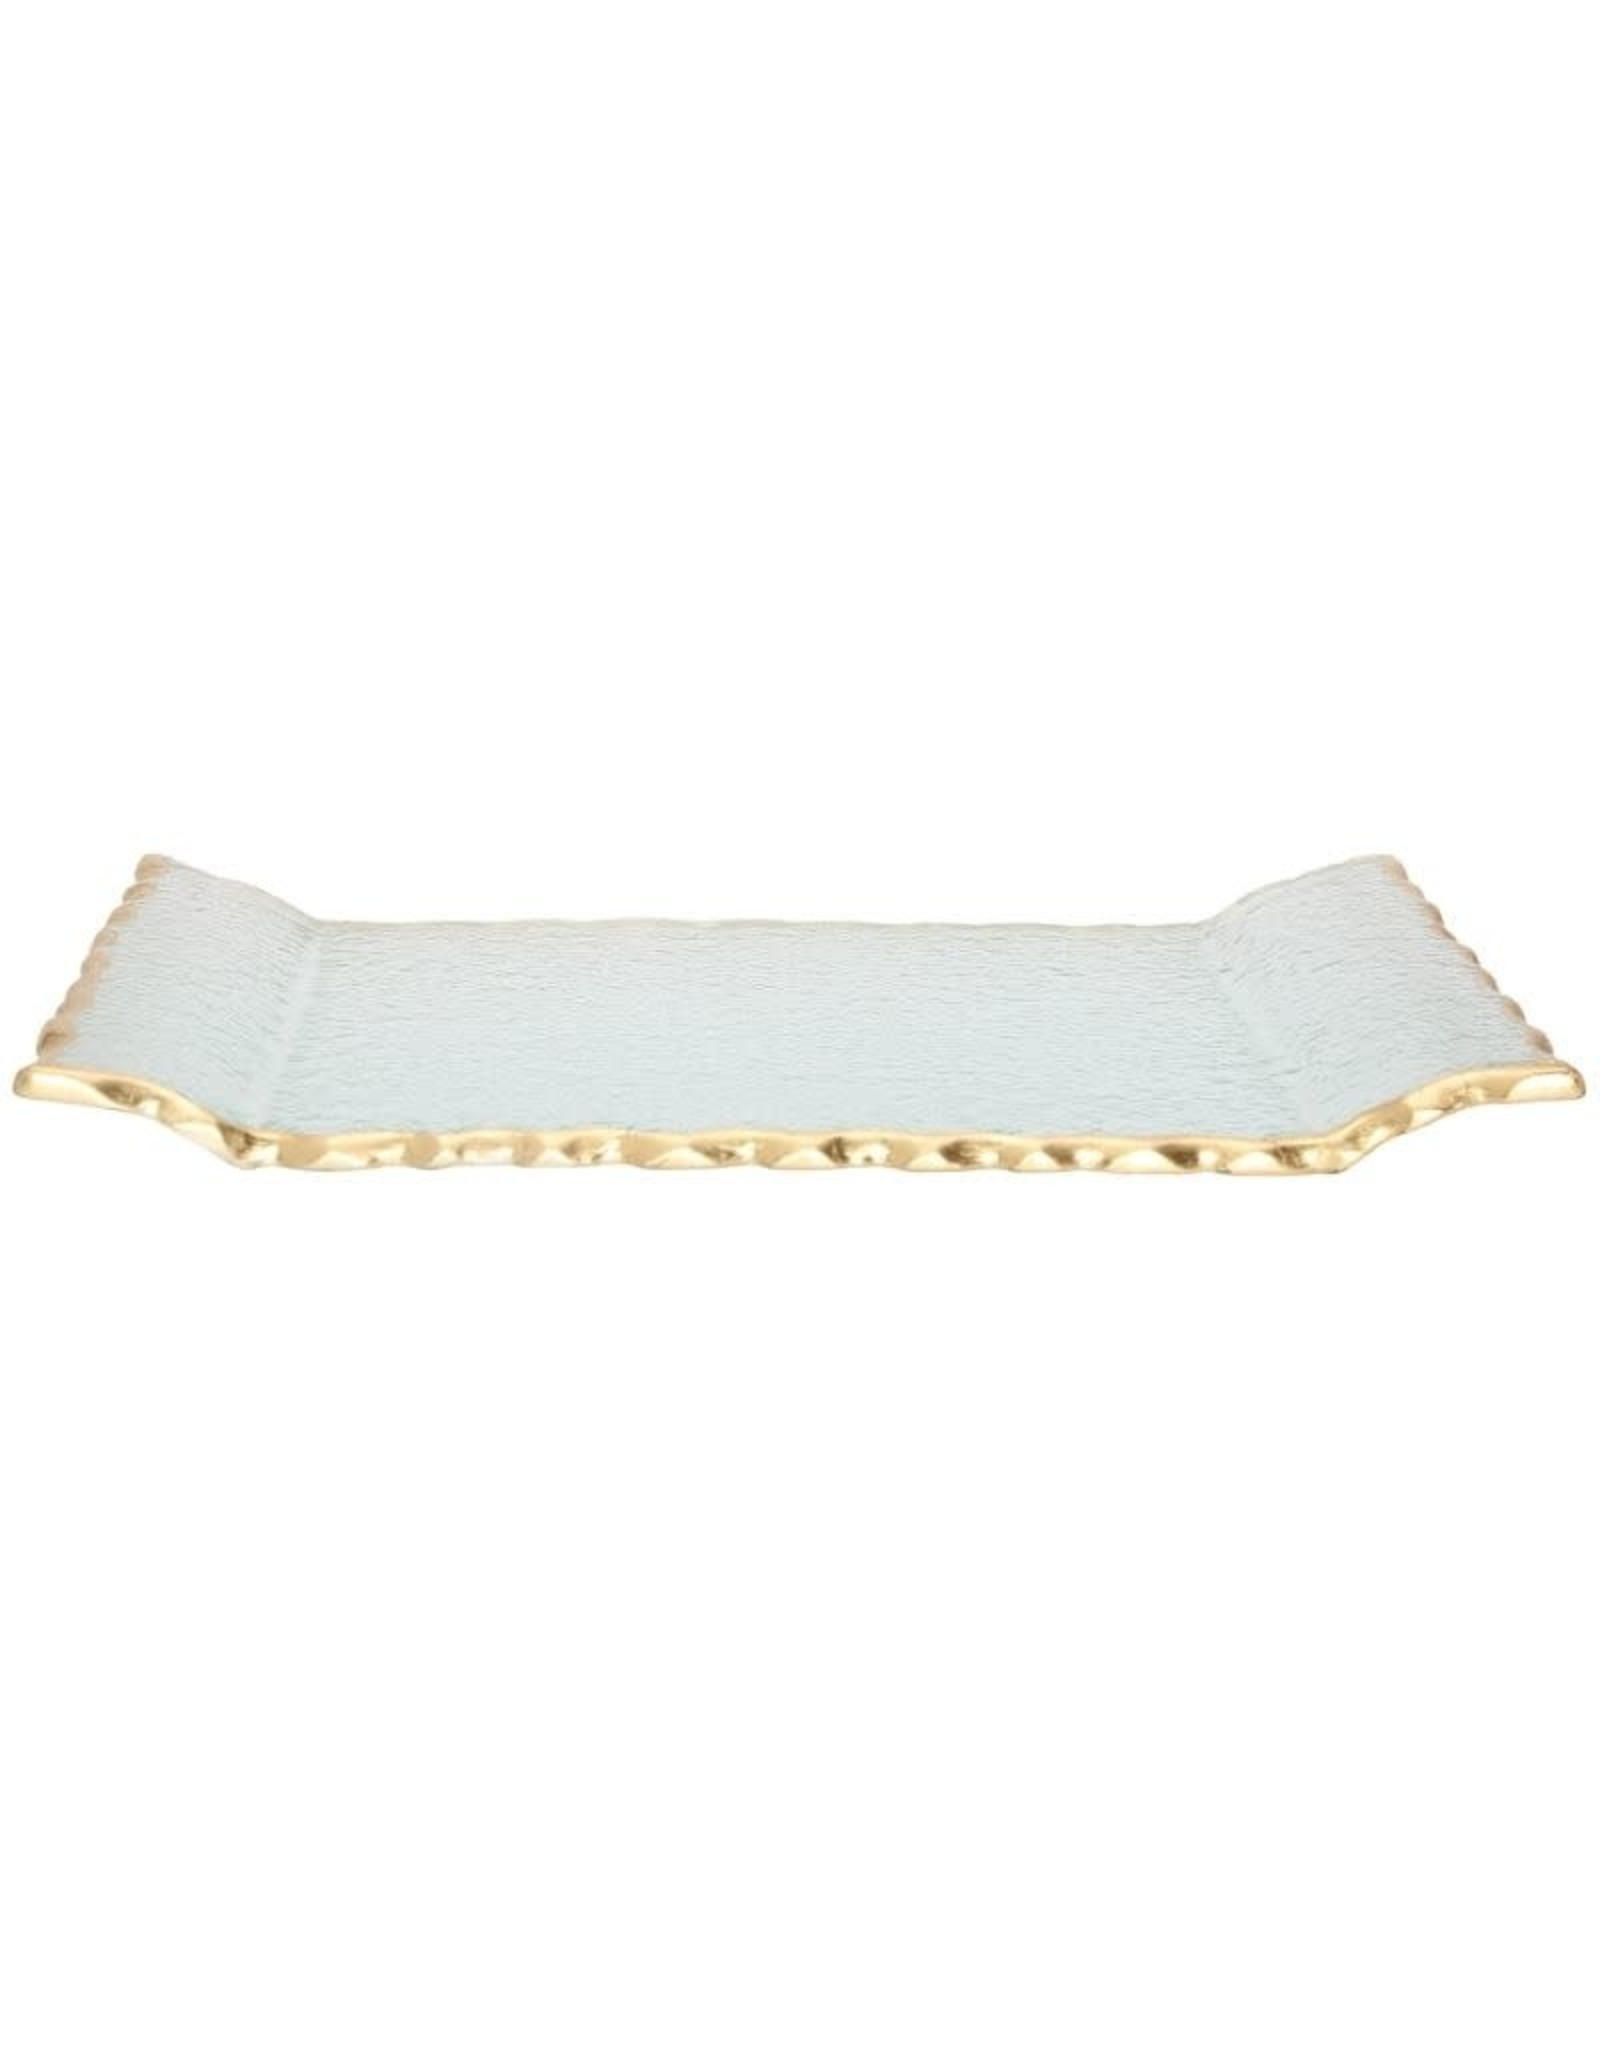 Glass Oblong Tray with Gold Edge